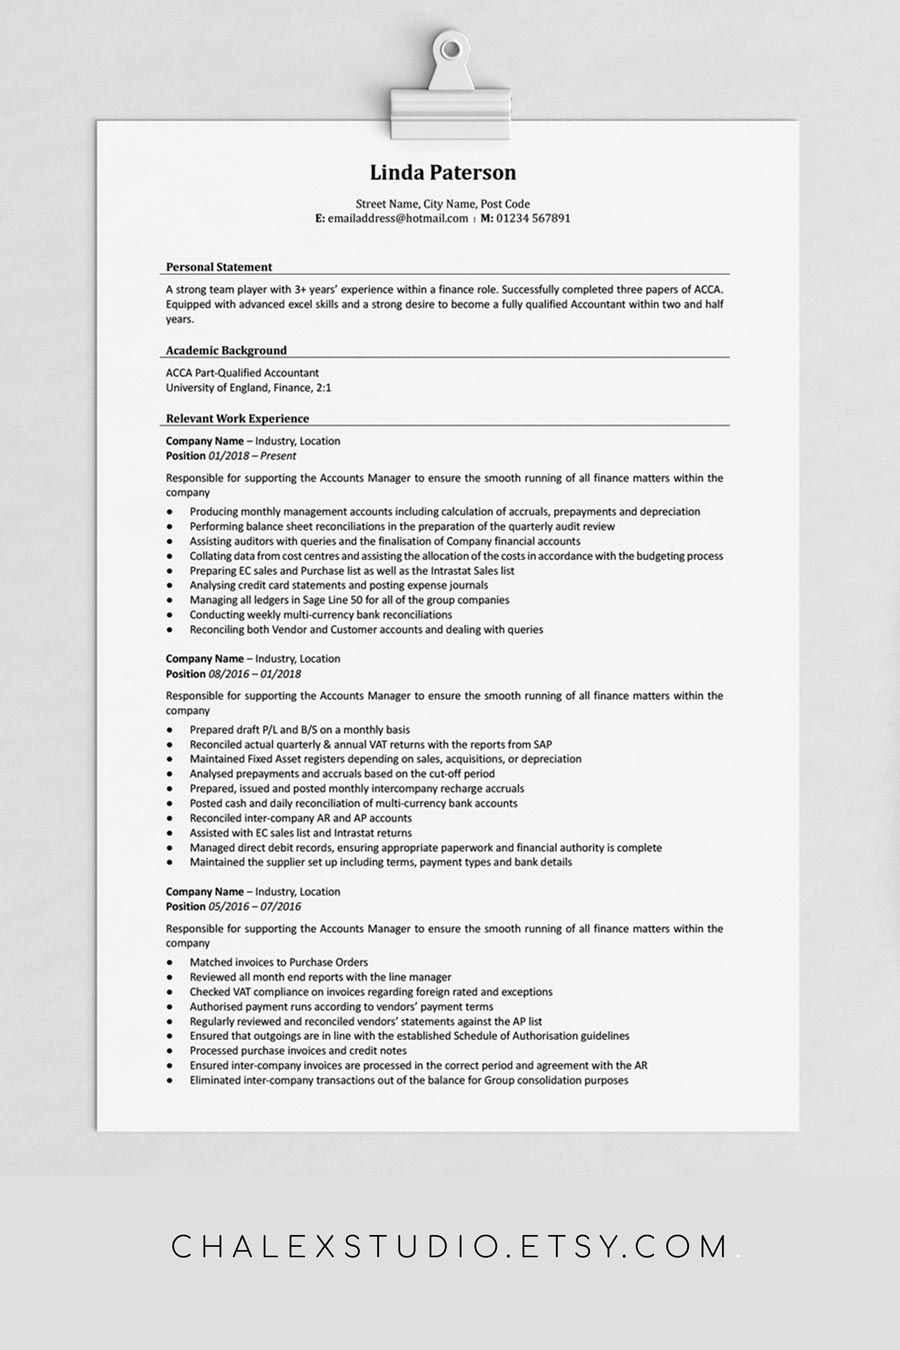 Free Download Sample Resume In Word Format Free Resume Template